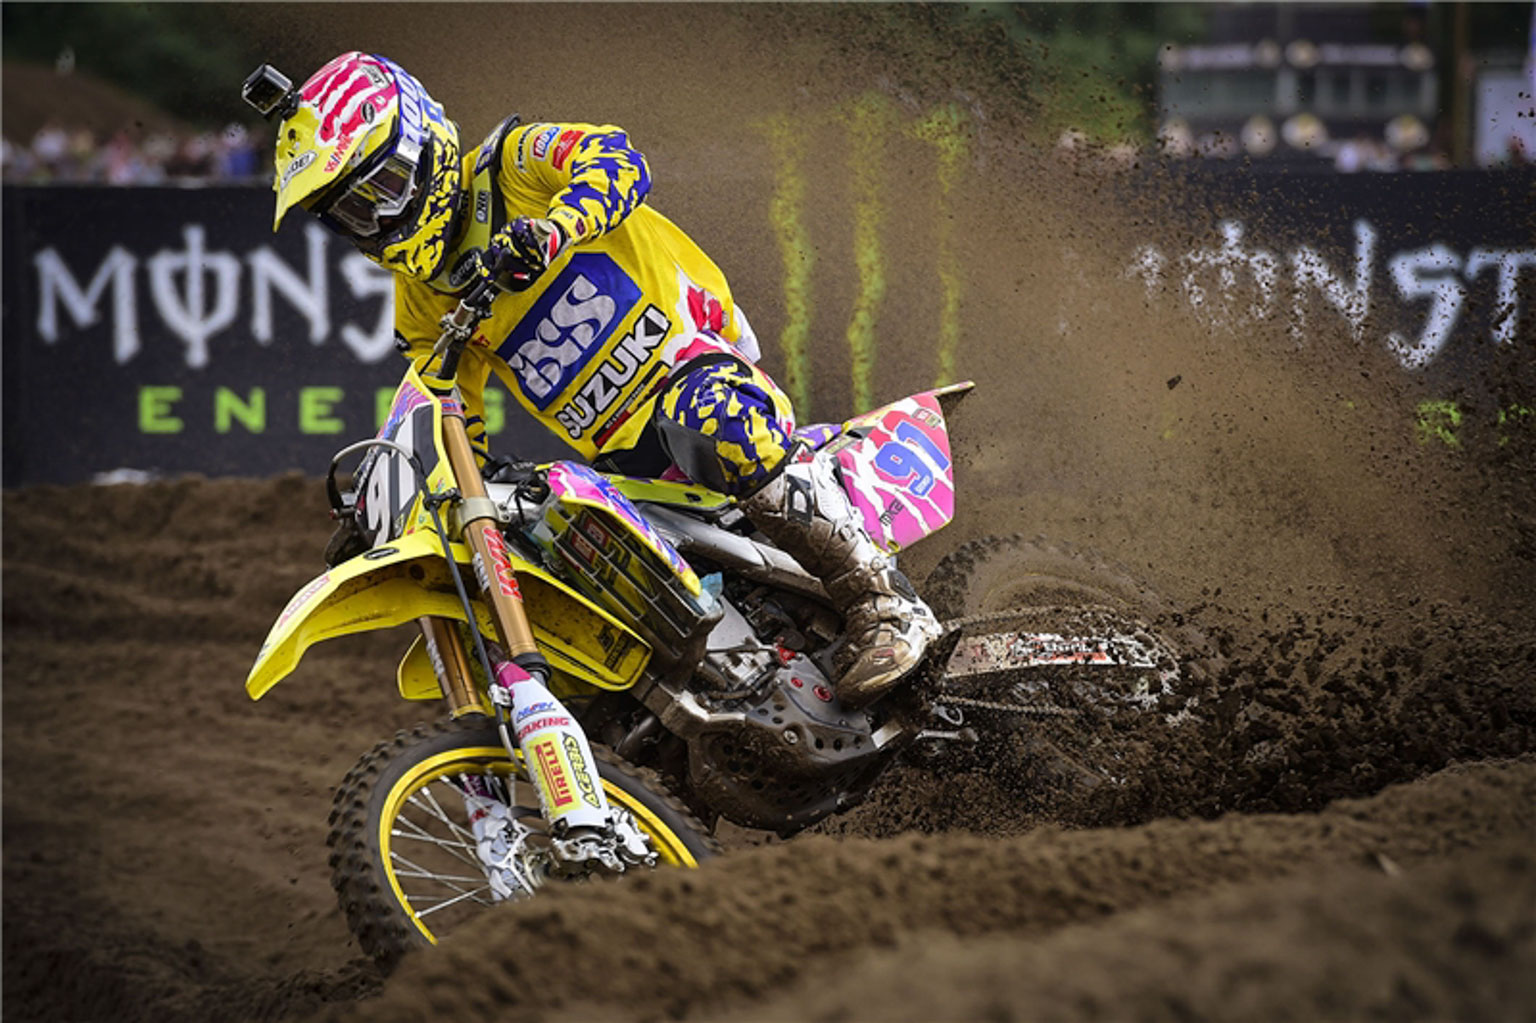 Jeremy Seewer is part of team Suzuki